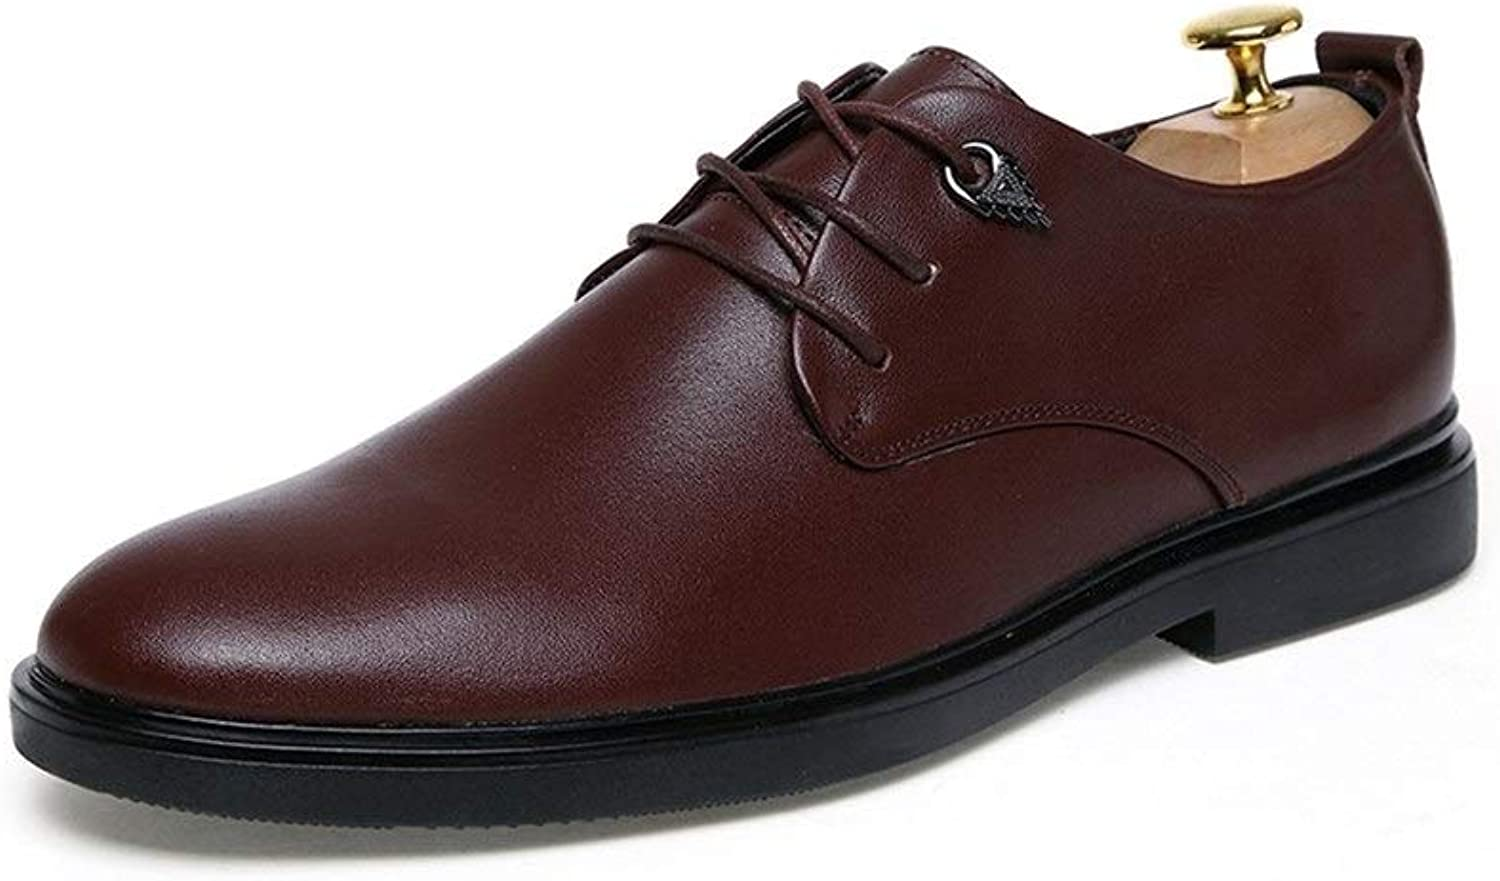 Fashion shoes,Casual shoes Men's Pointed Toe Oxford for Men Lace up British Style Genuine Leather Business Formal Wedding Dress shoes Personality shoes, Oxford shoes (color   Brown, Size   8 UK)